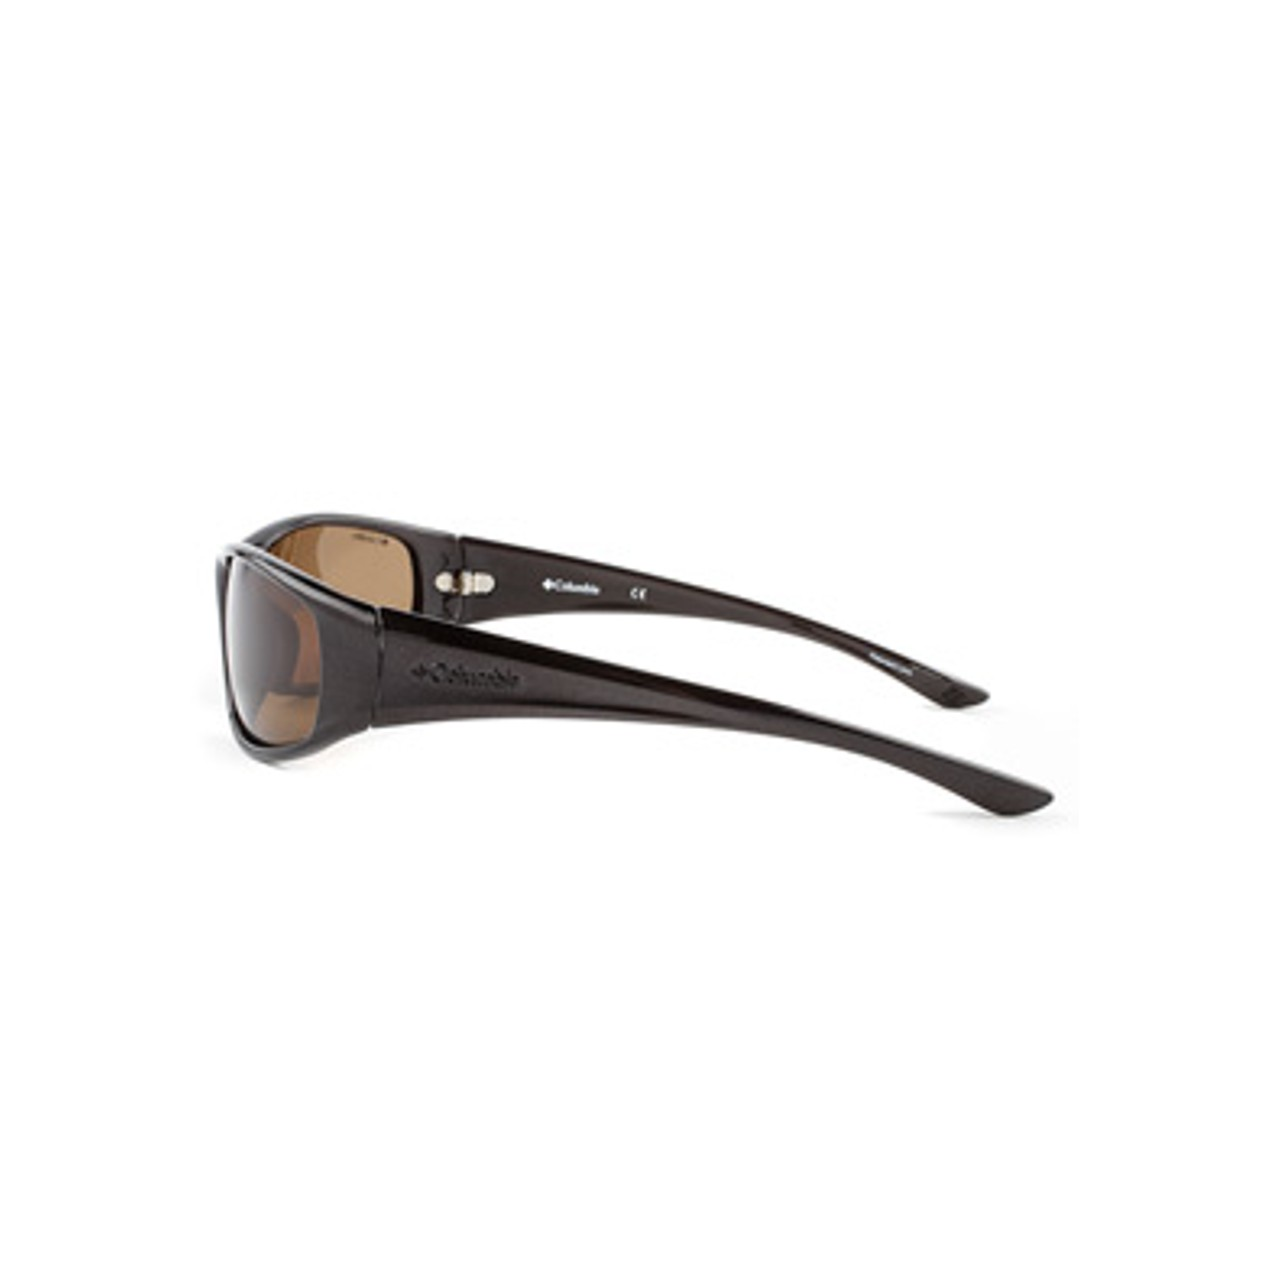 cd9974125b27 Columbia Borrego Sport Sunglasses - Grappa Columbia Borrego Sport Sunglasses  - Grappa